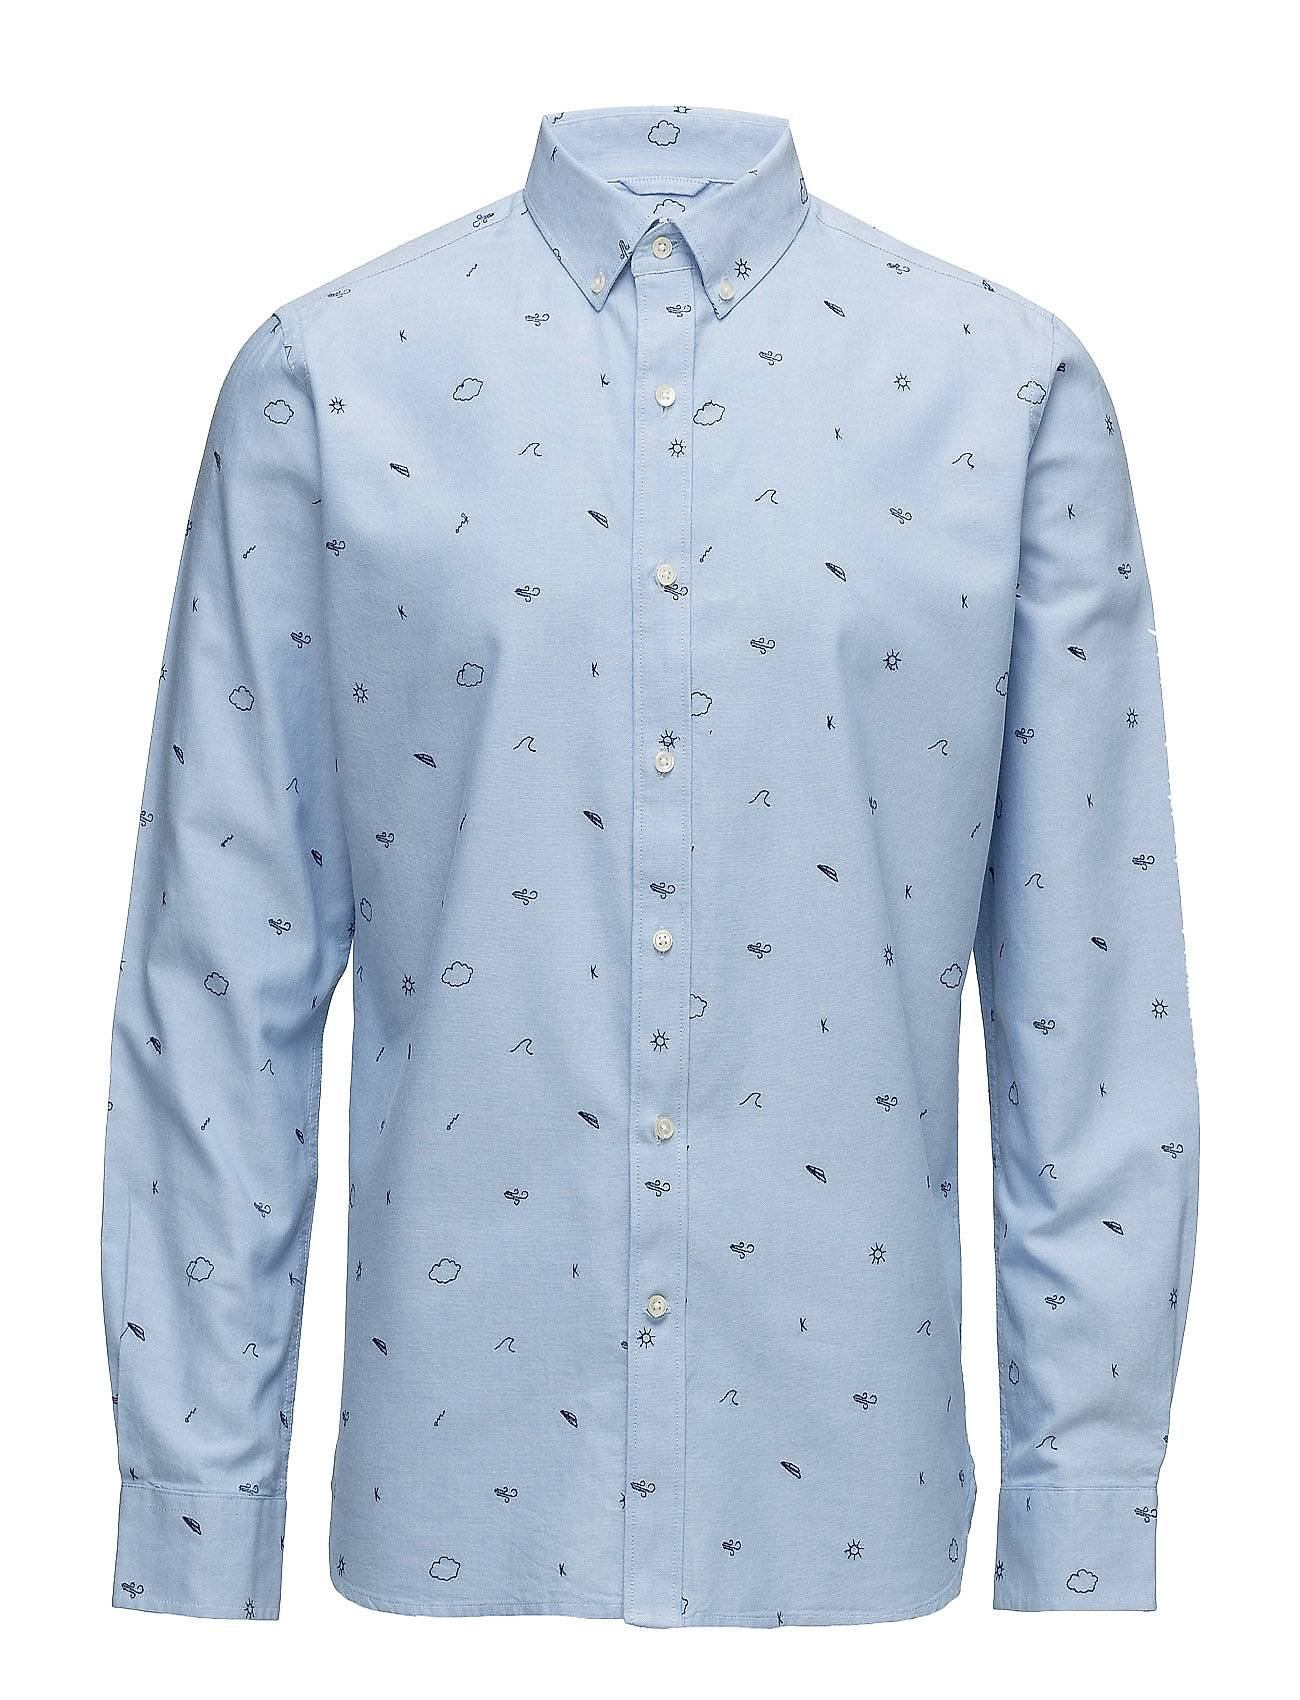 Knowledge Cotton Apparel Oxford Shirt W/Allover Embroidery -